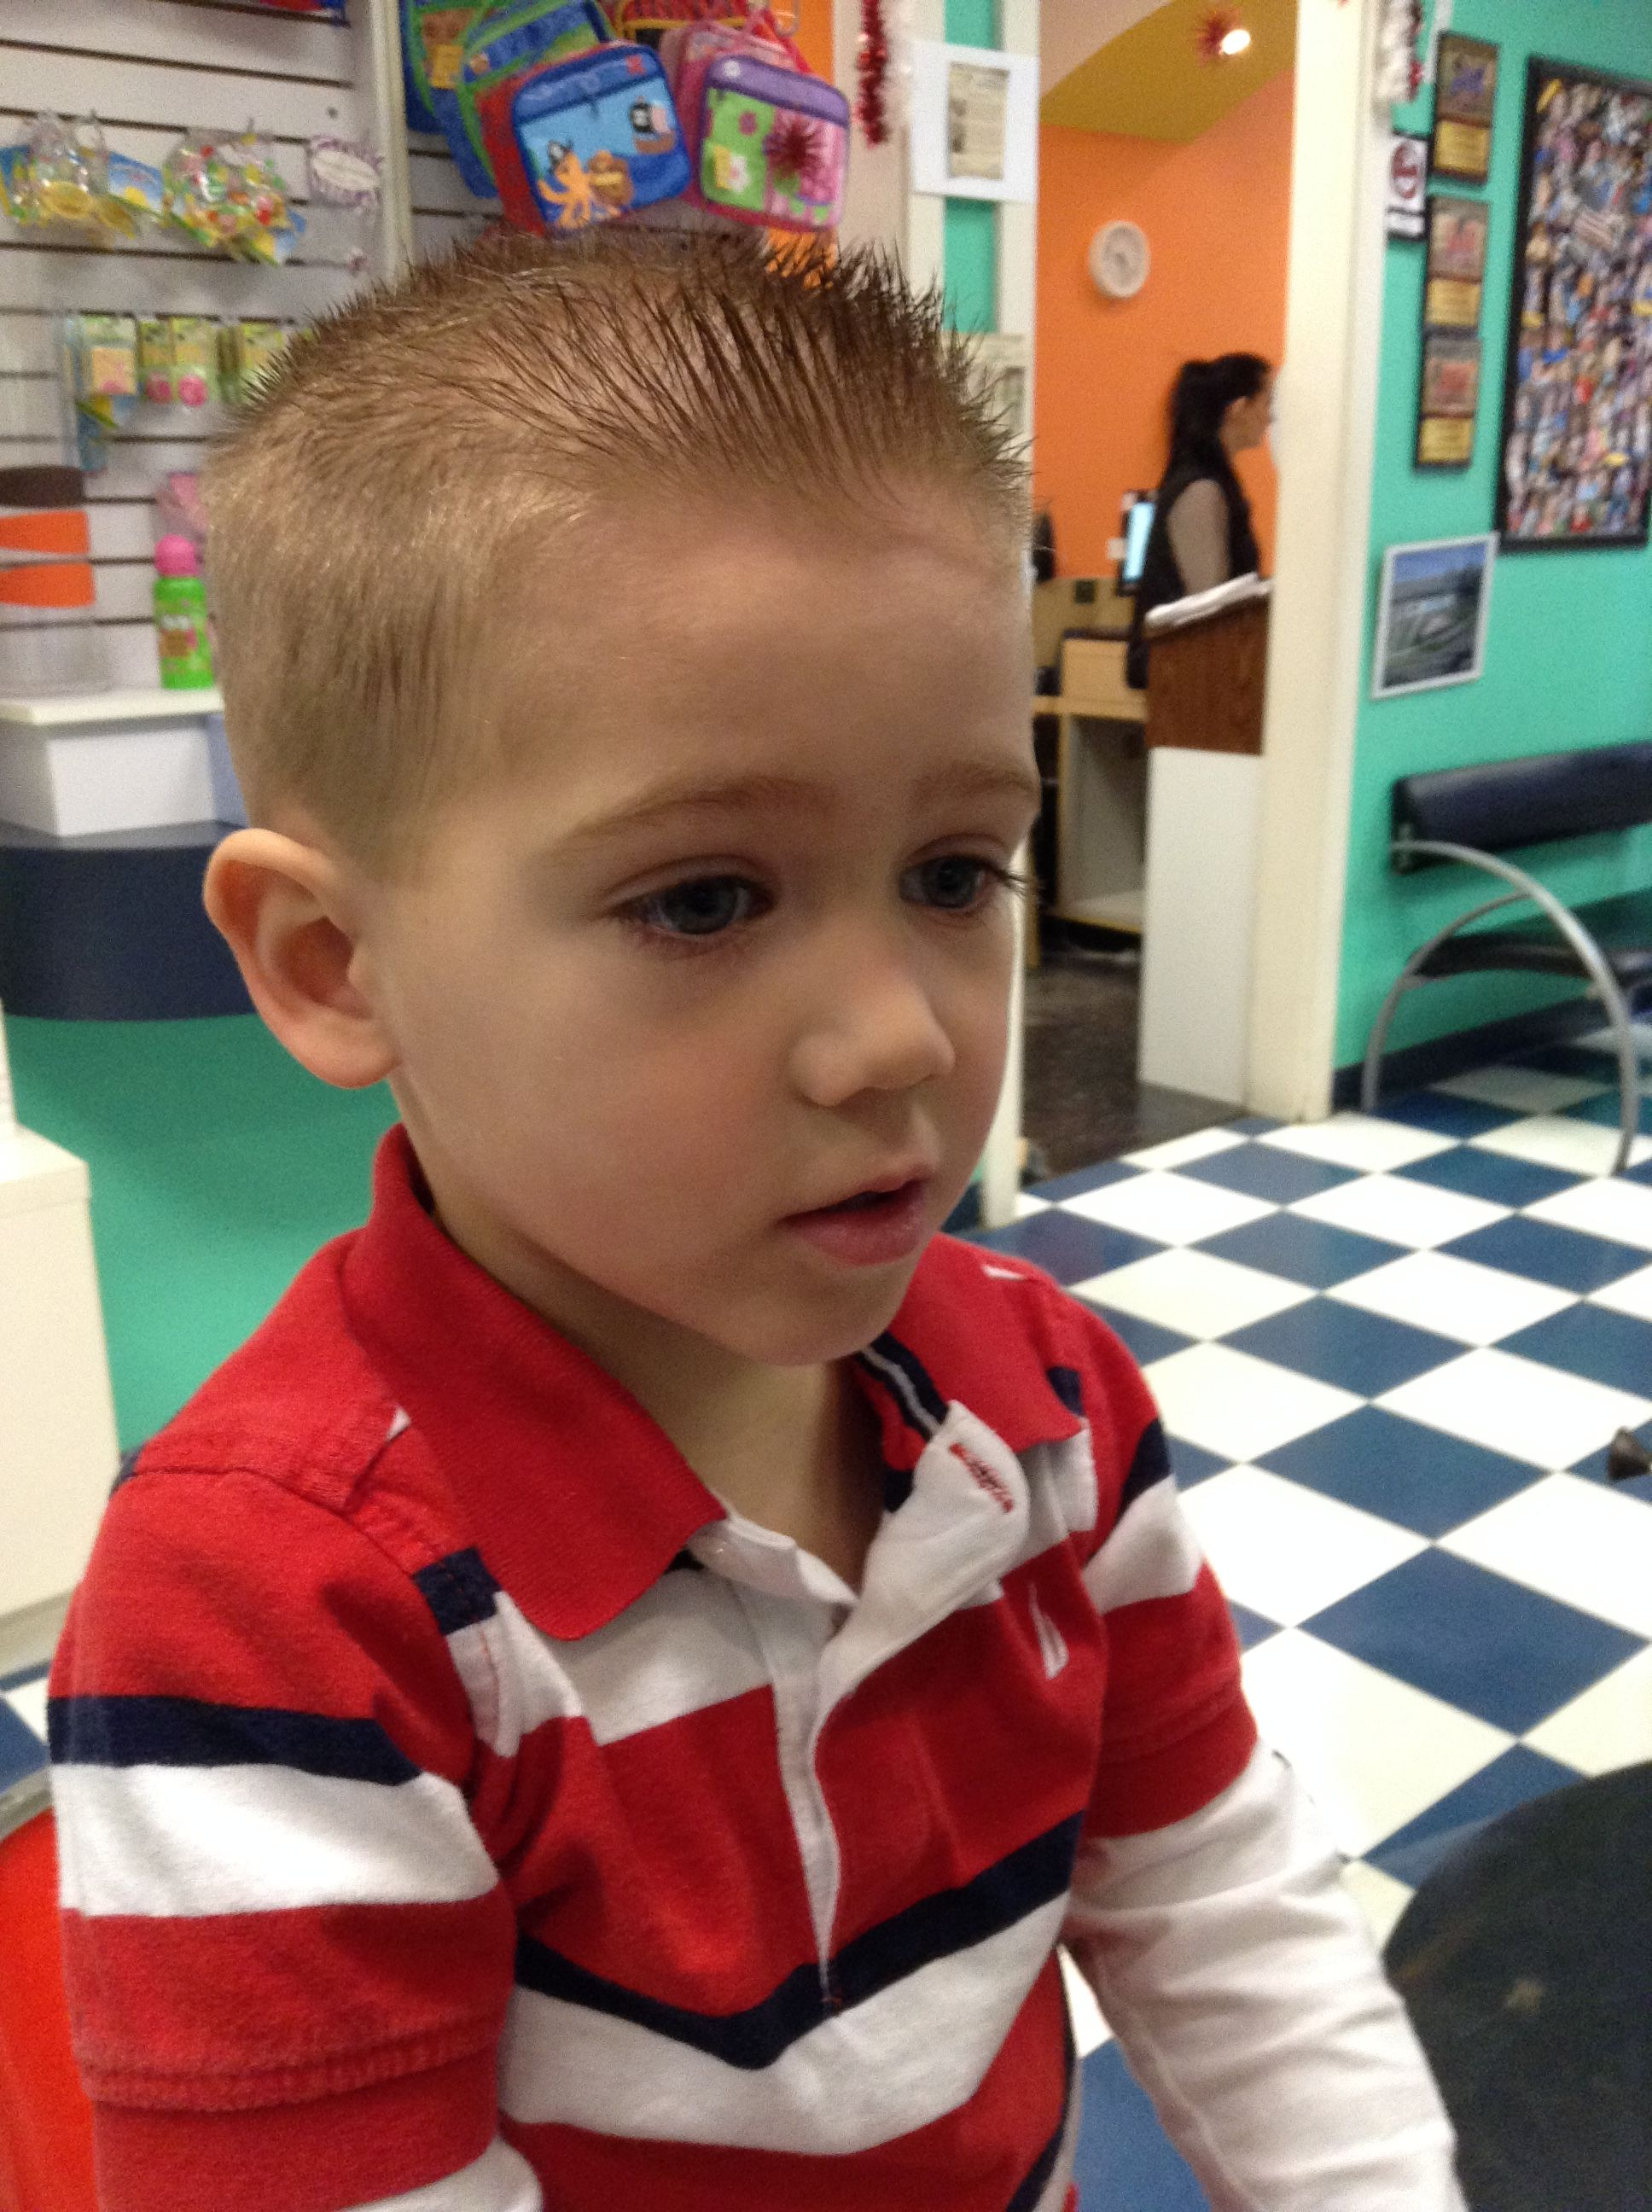 Young Boys Modified Buzz Haircut Haircuts For Boys And Girls